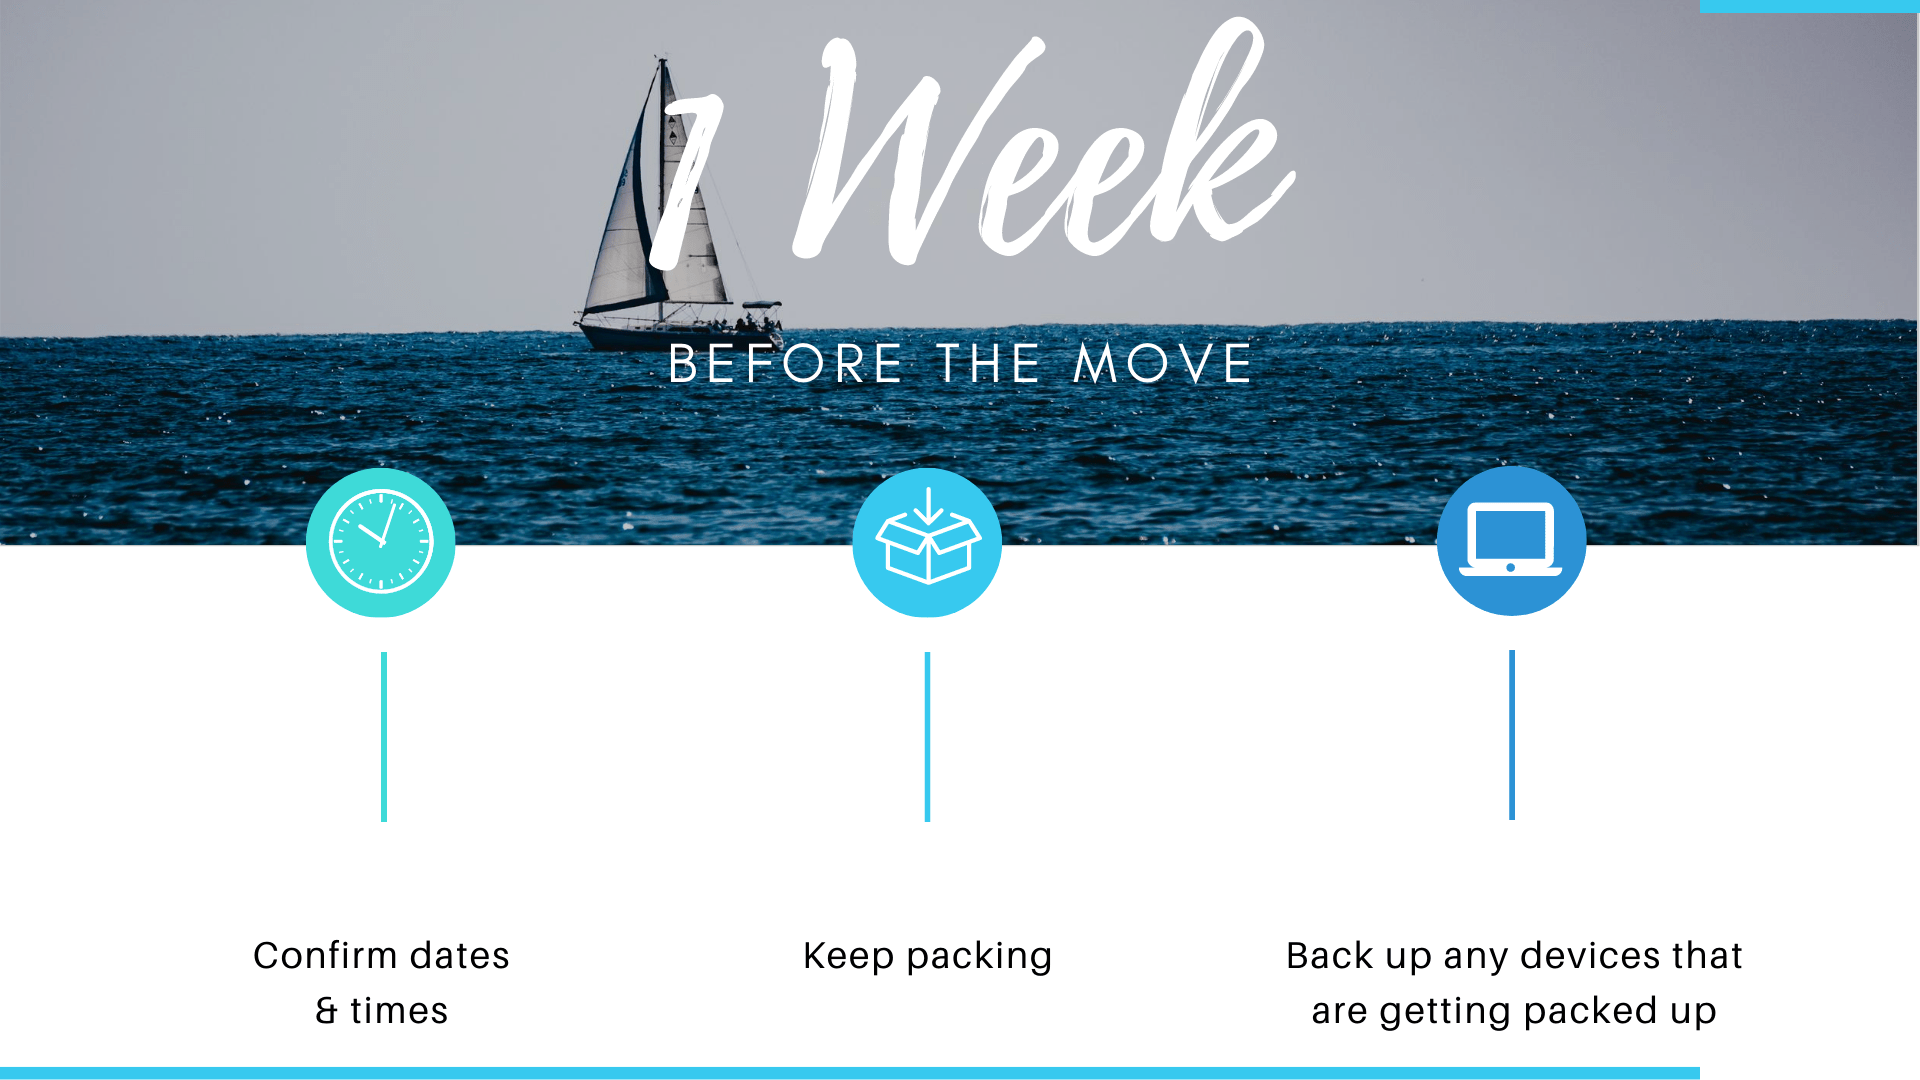 How to prepare 1 week before your move date